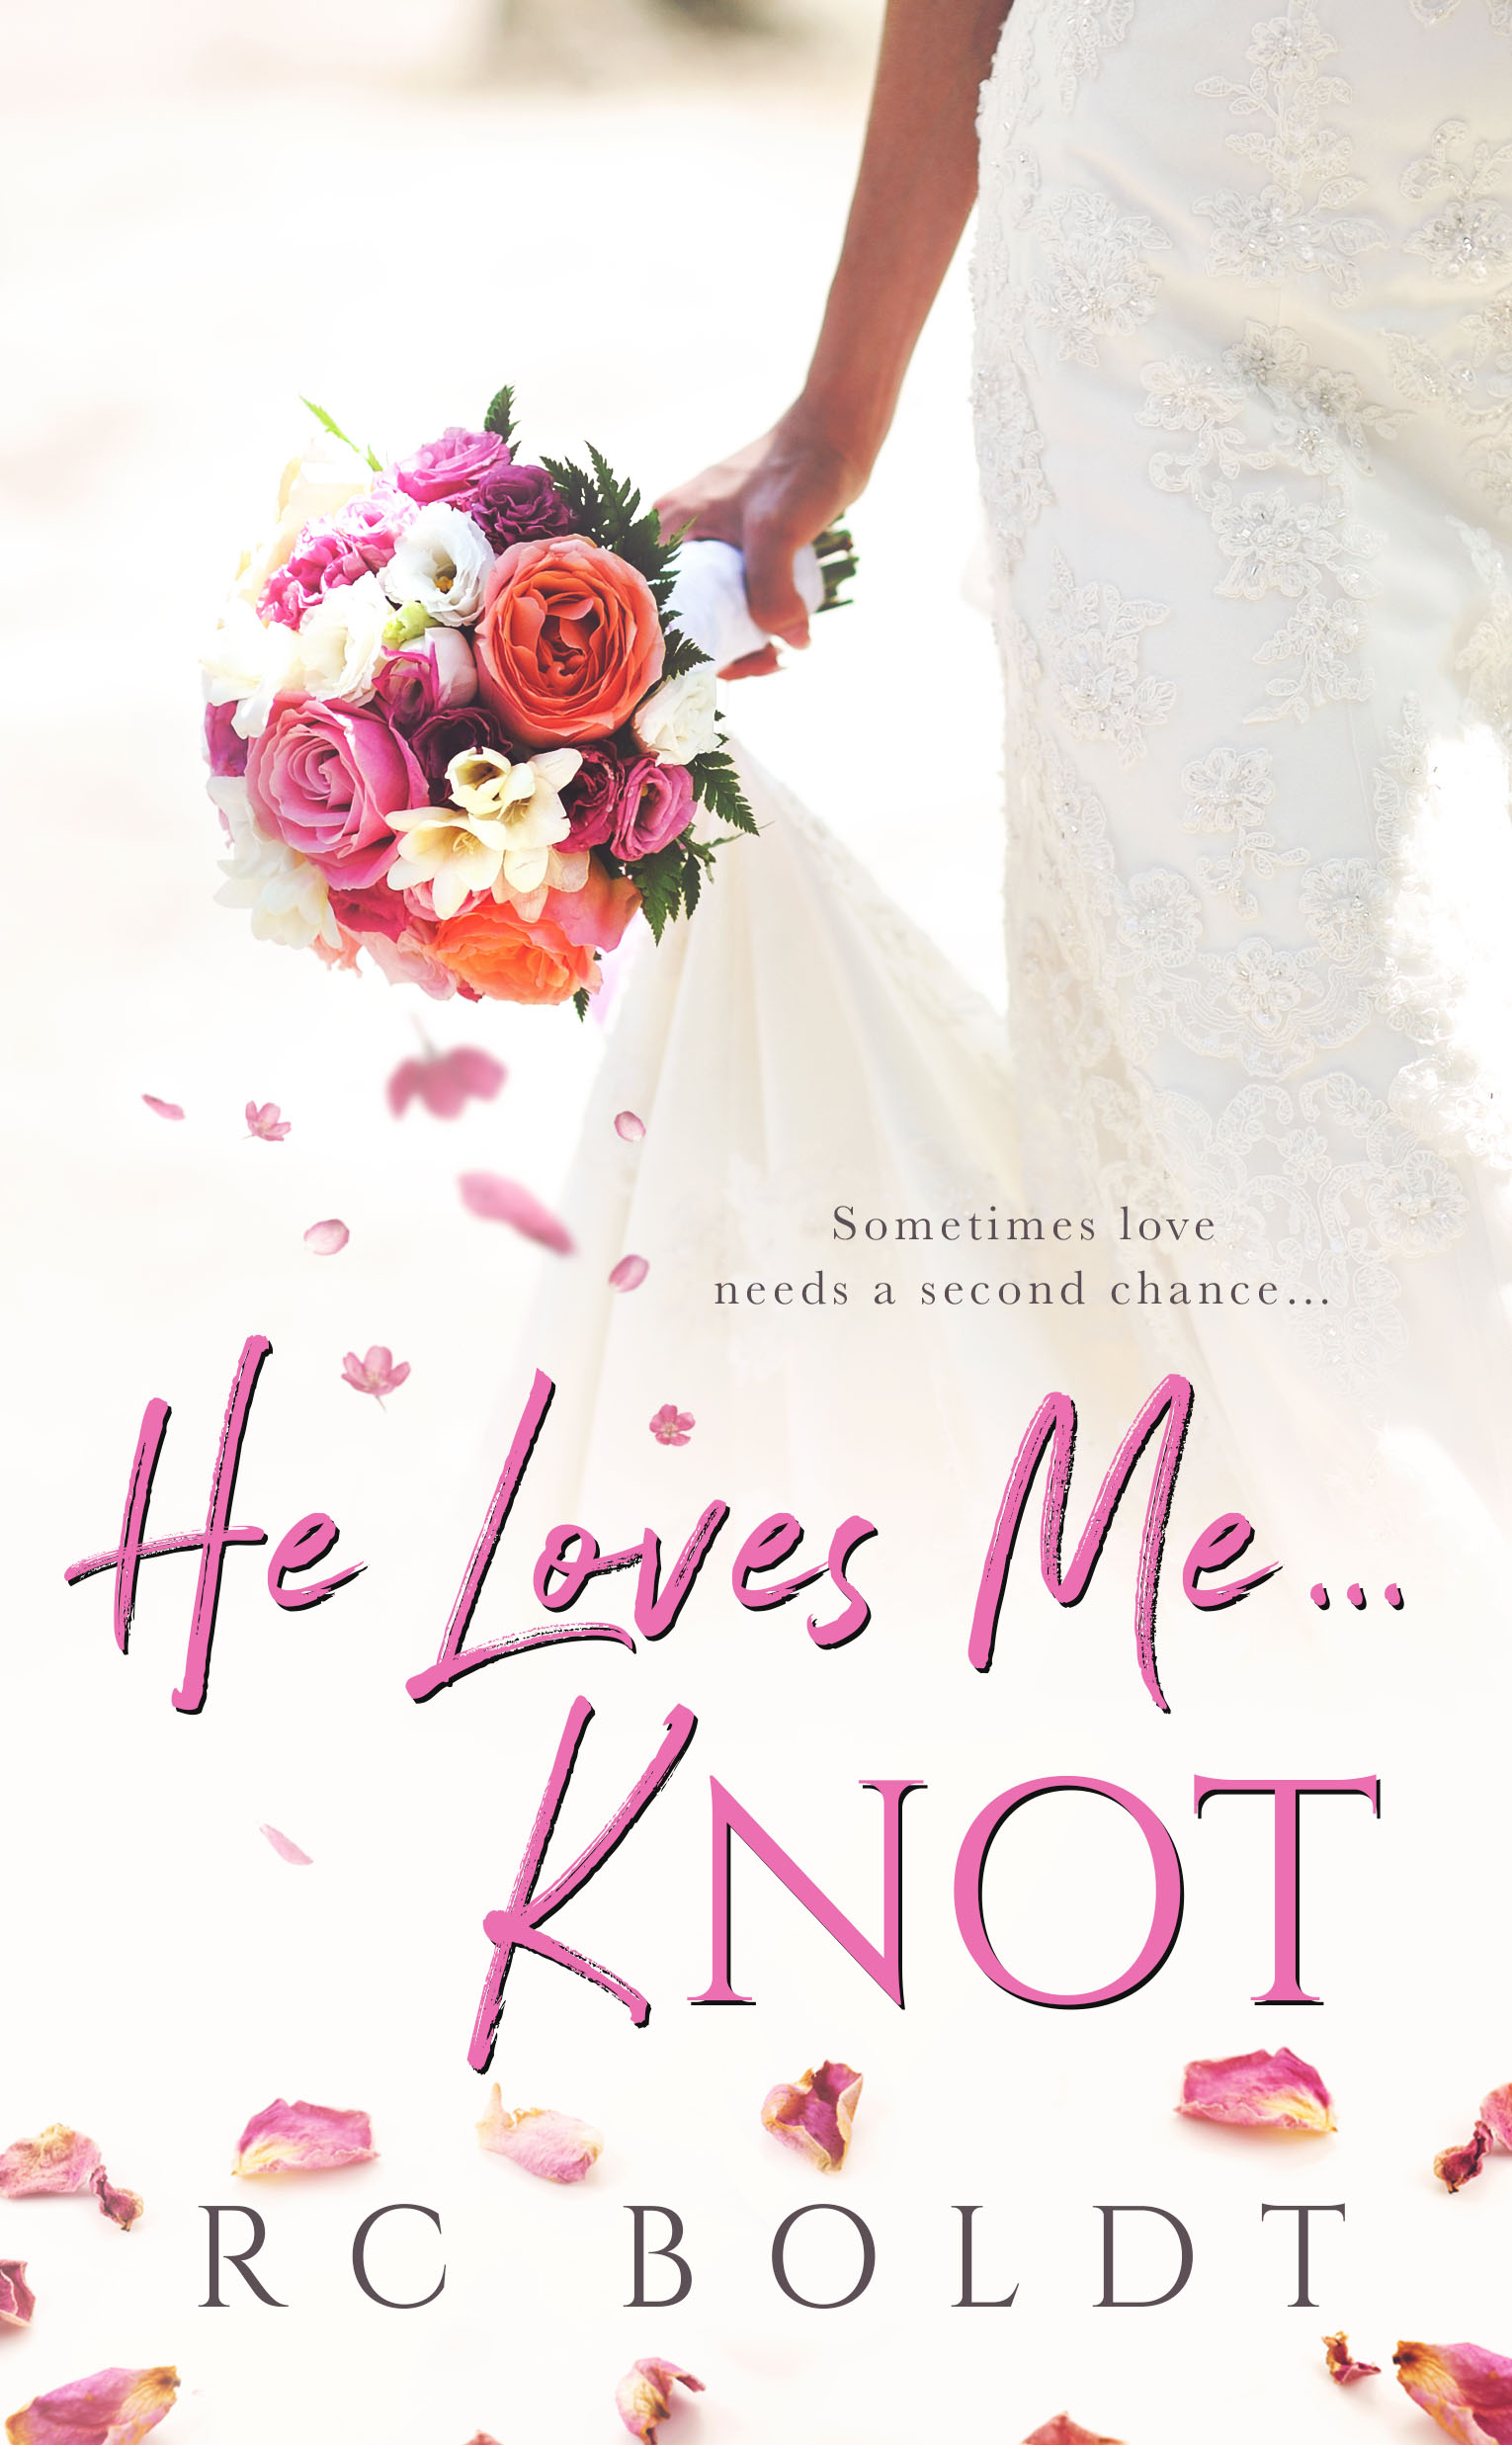 He Loves Me ... Knot by RC Boldt